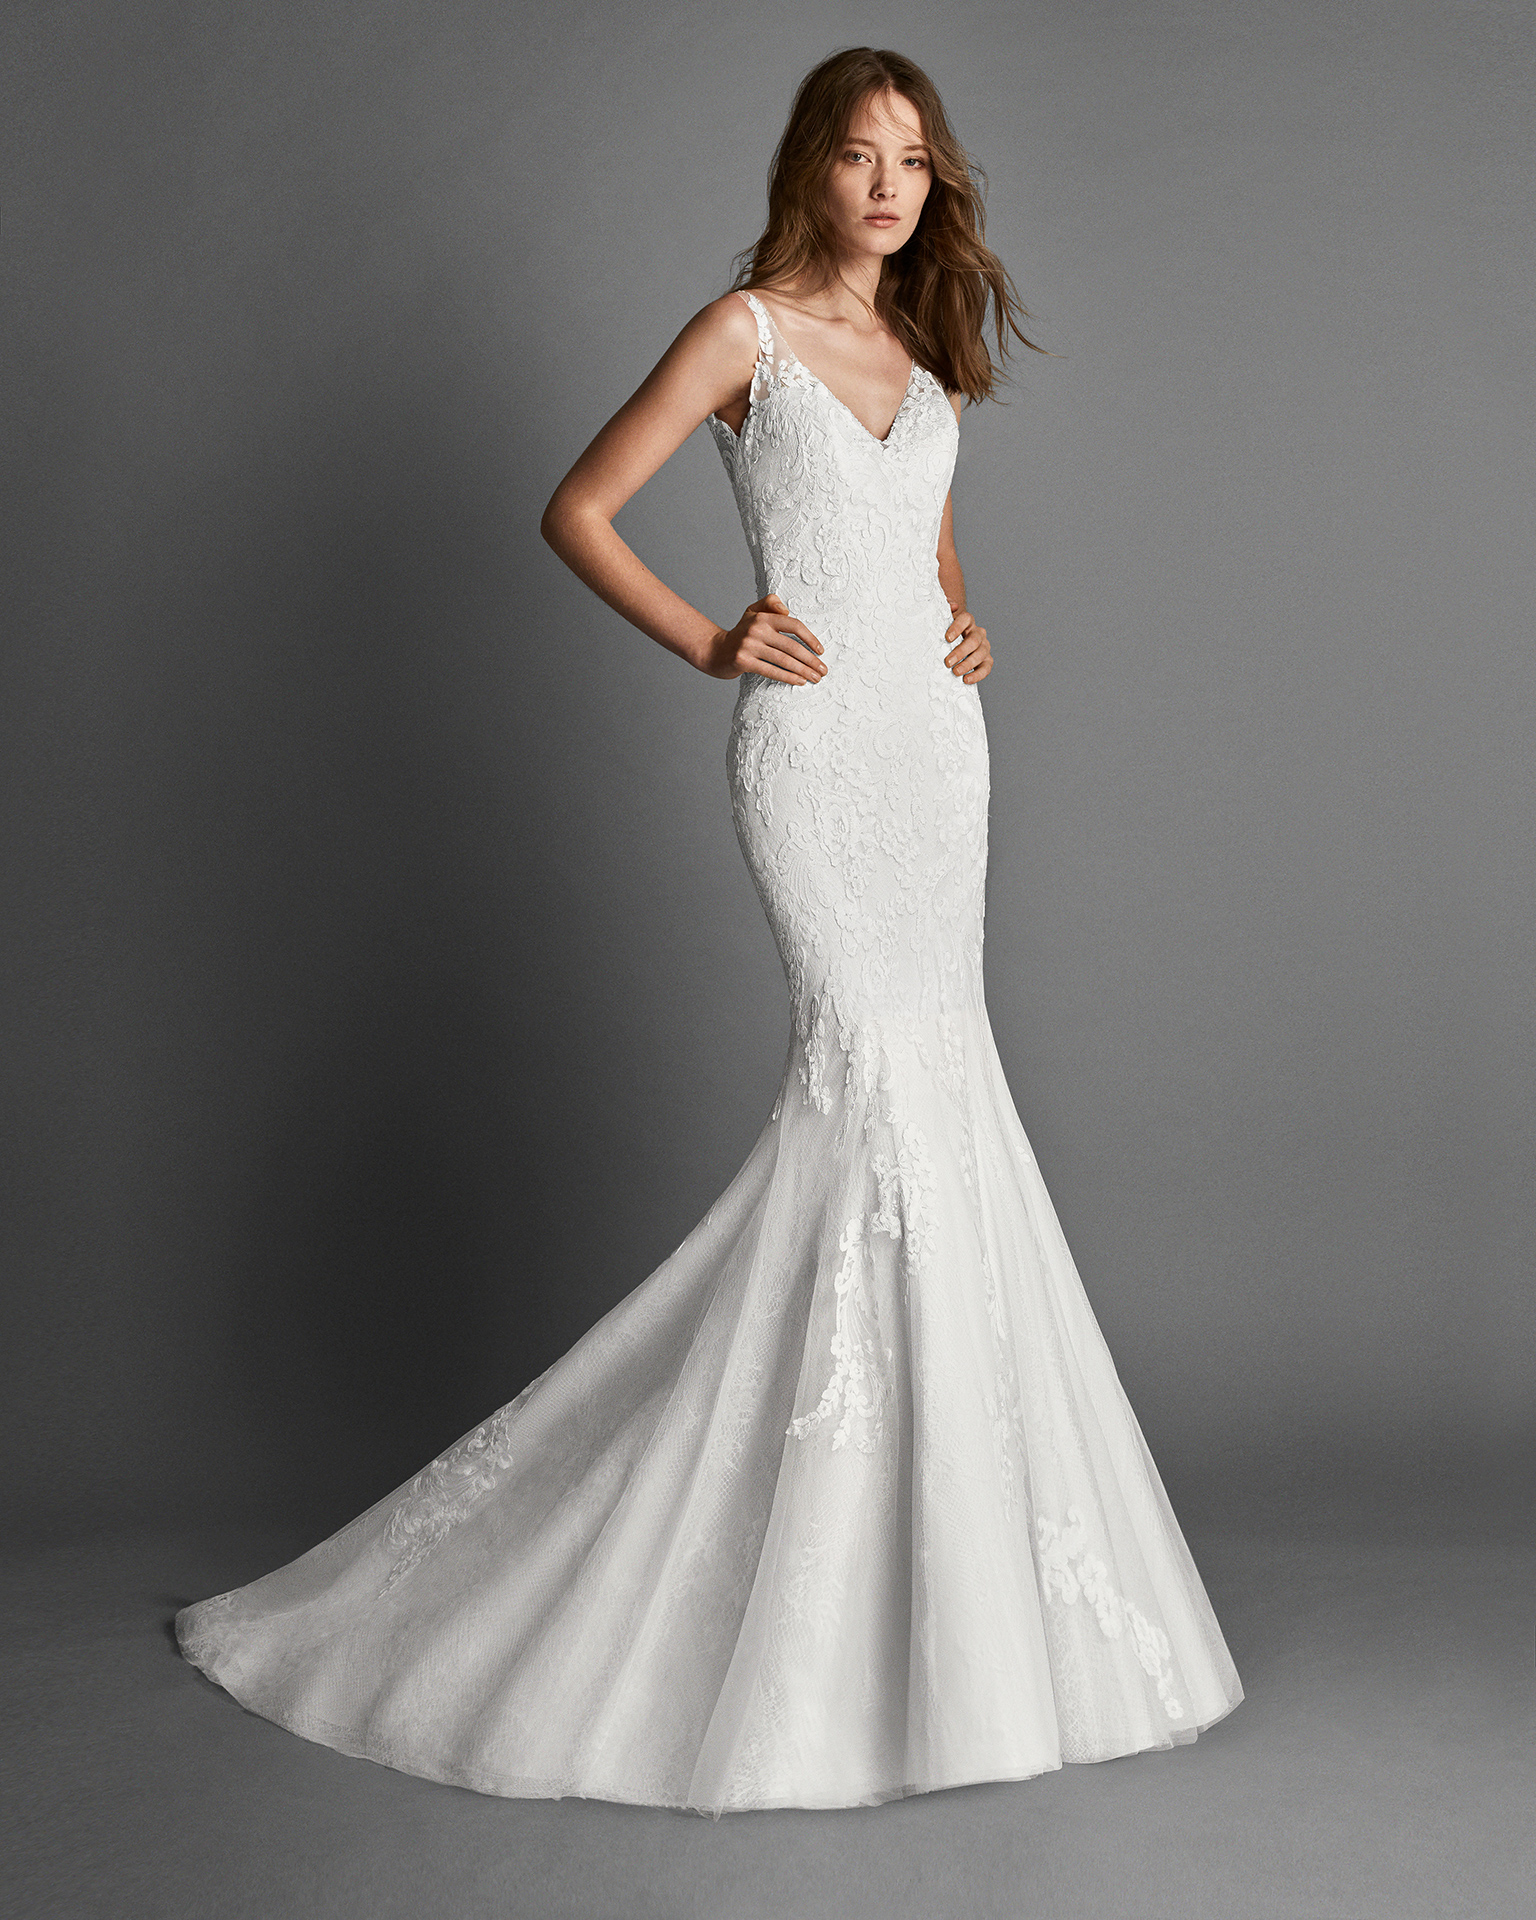 Princess-style beaded lace wedding dress with lace back and overskirt.